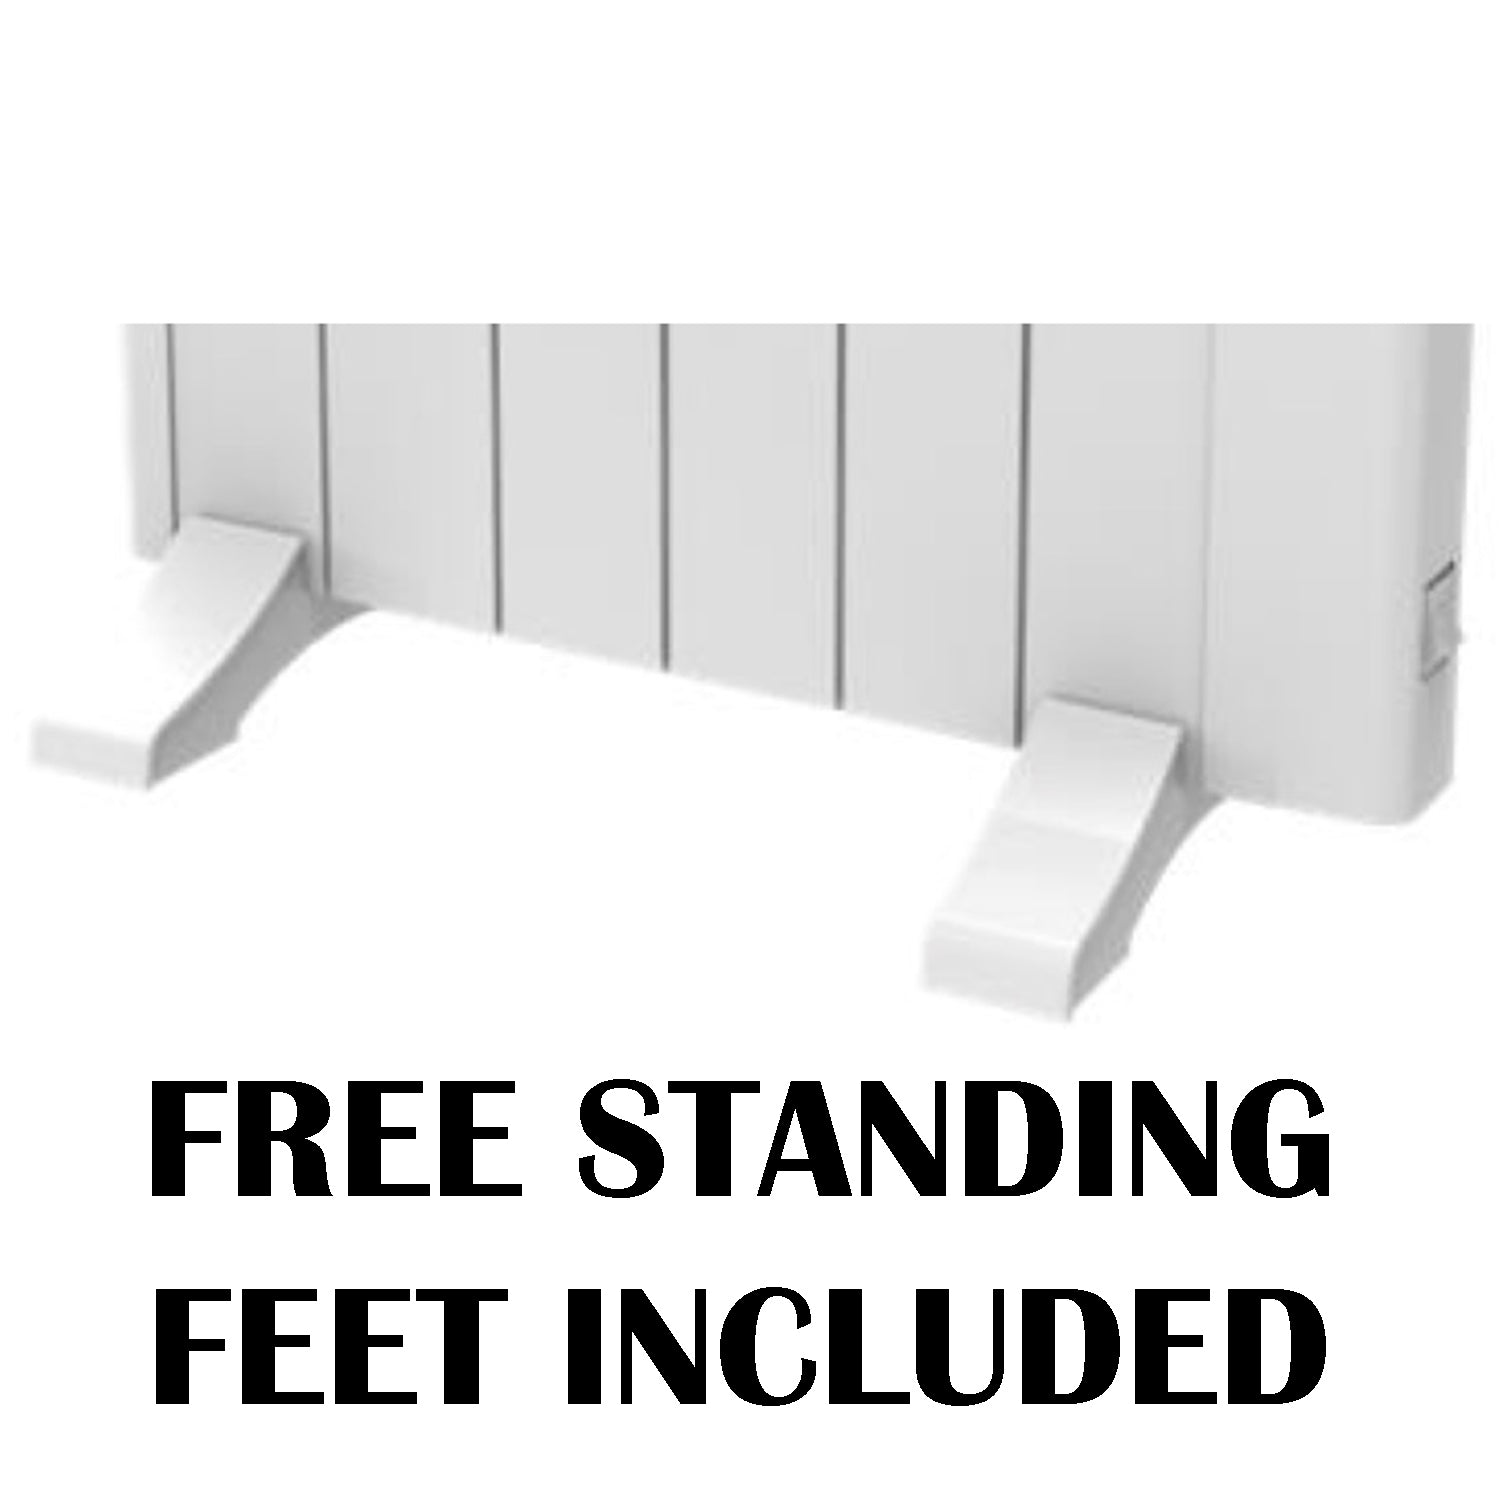 REINA ARLEC ELECTRIC RADIATOR FREE STANDING FEET